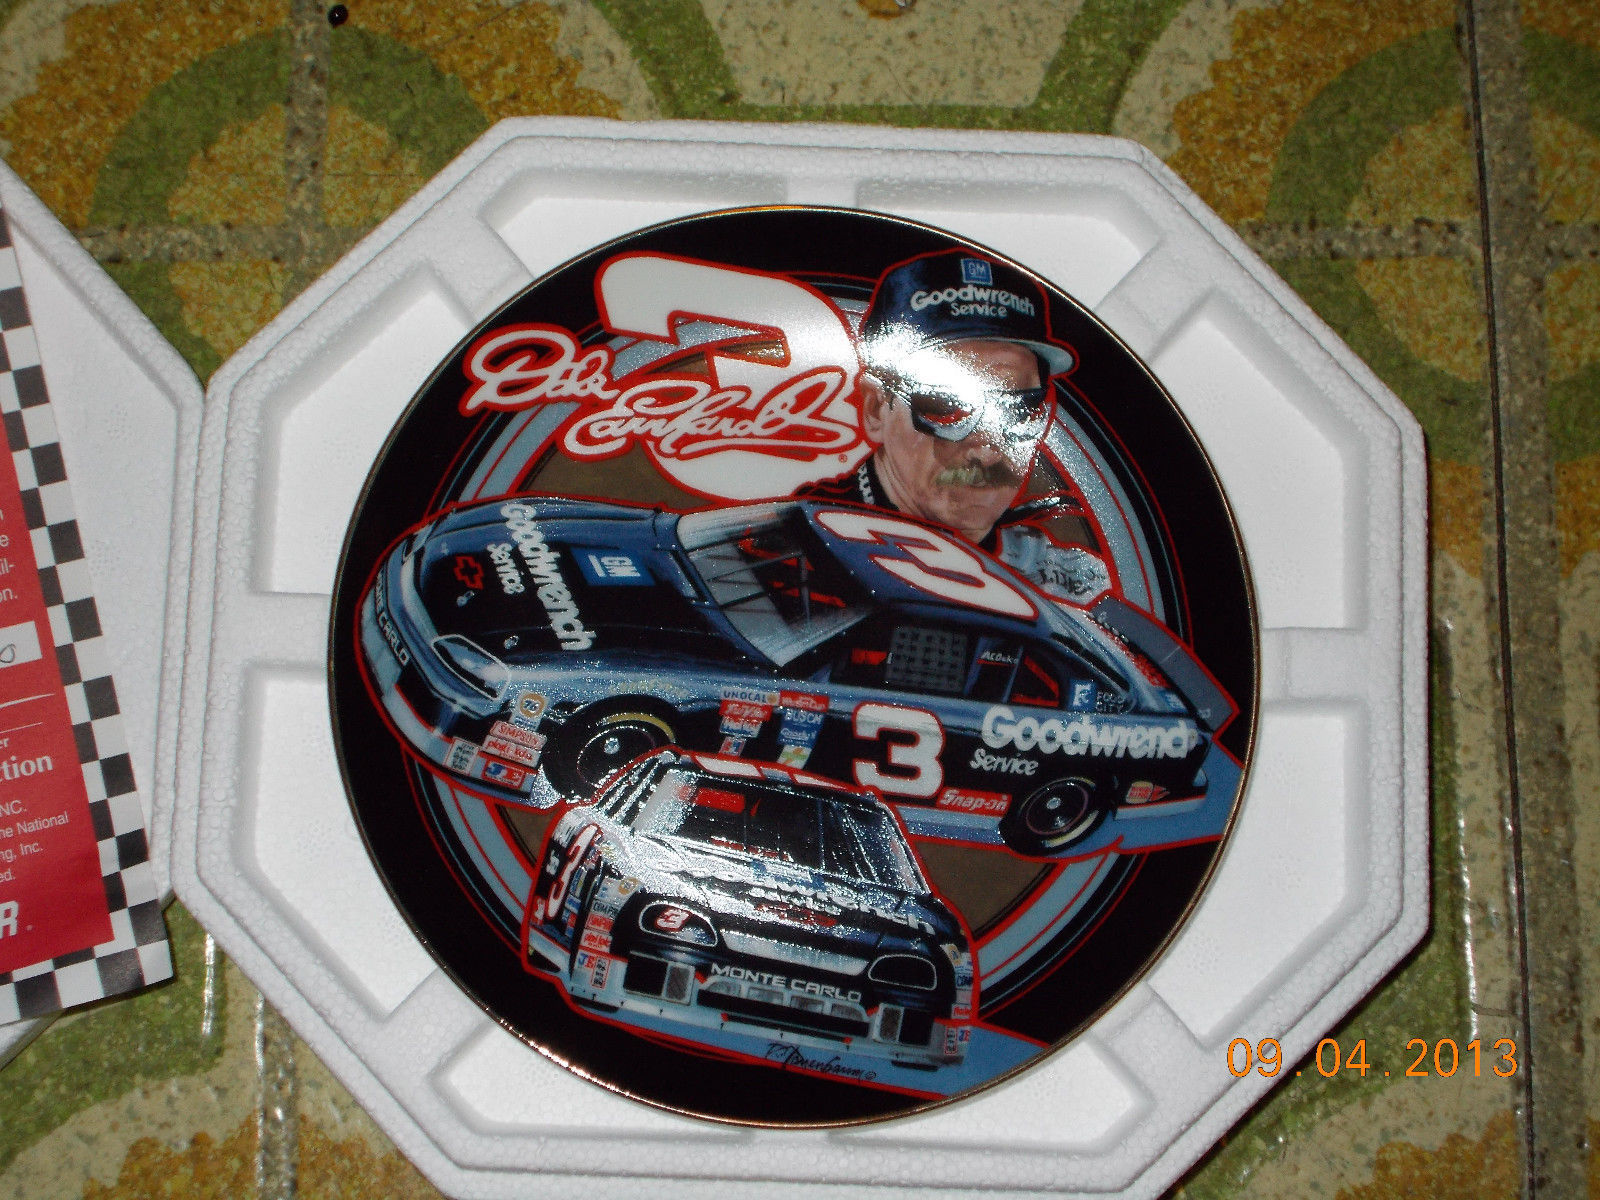 The Hamilton Collection Dale Earnhardt Sr. #3 Nascar Collectors Plate